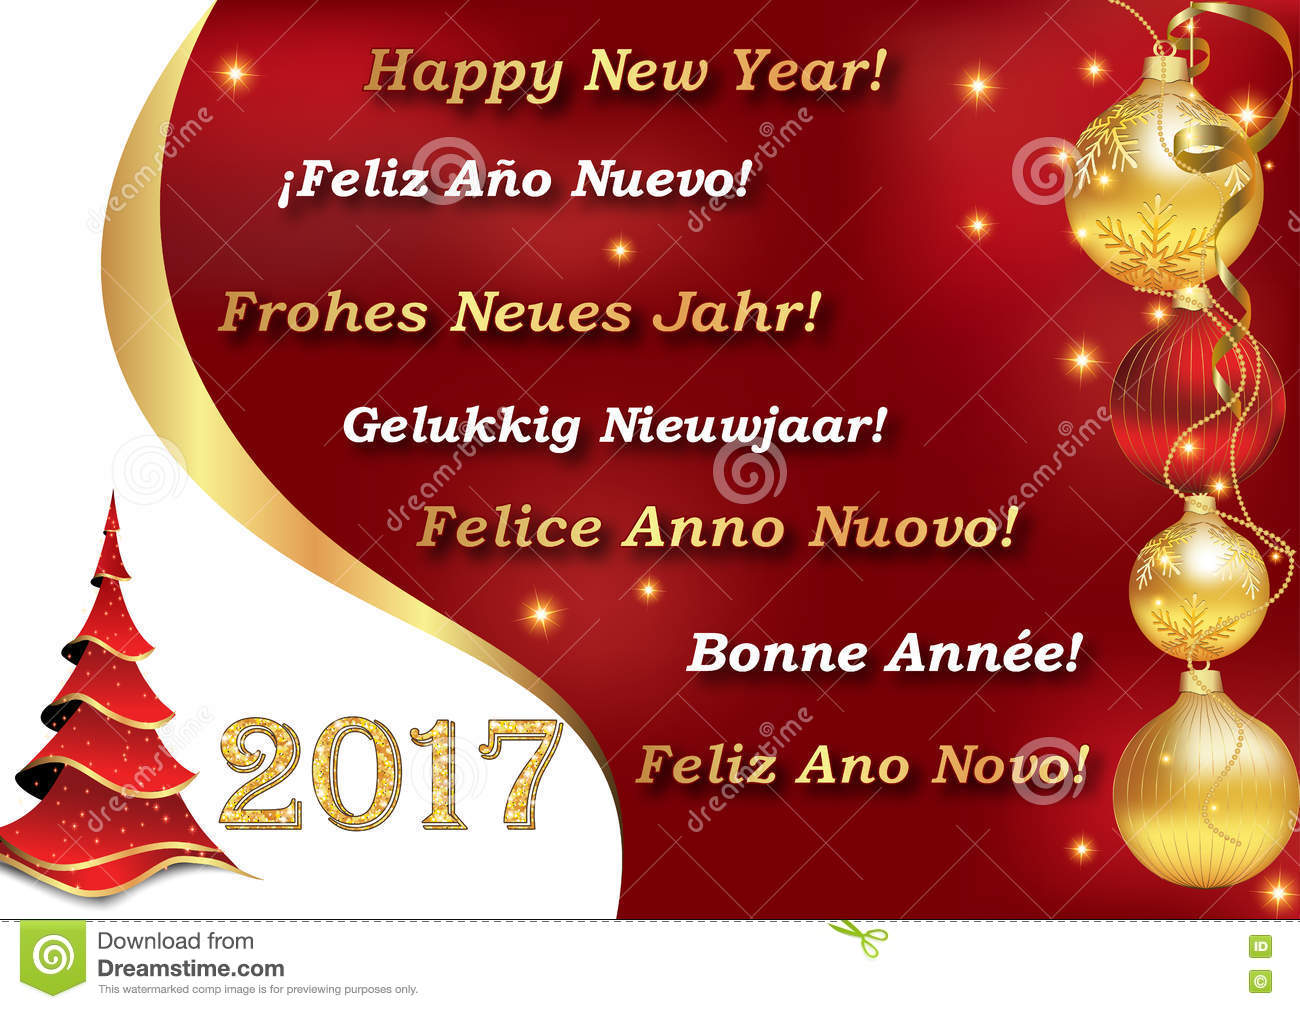 Happy new year 2017 in many languages stock photo image of happy new year 2017 in many languages m4hsunfo